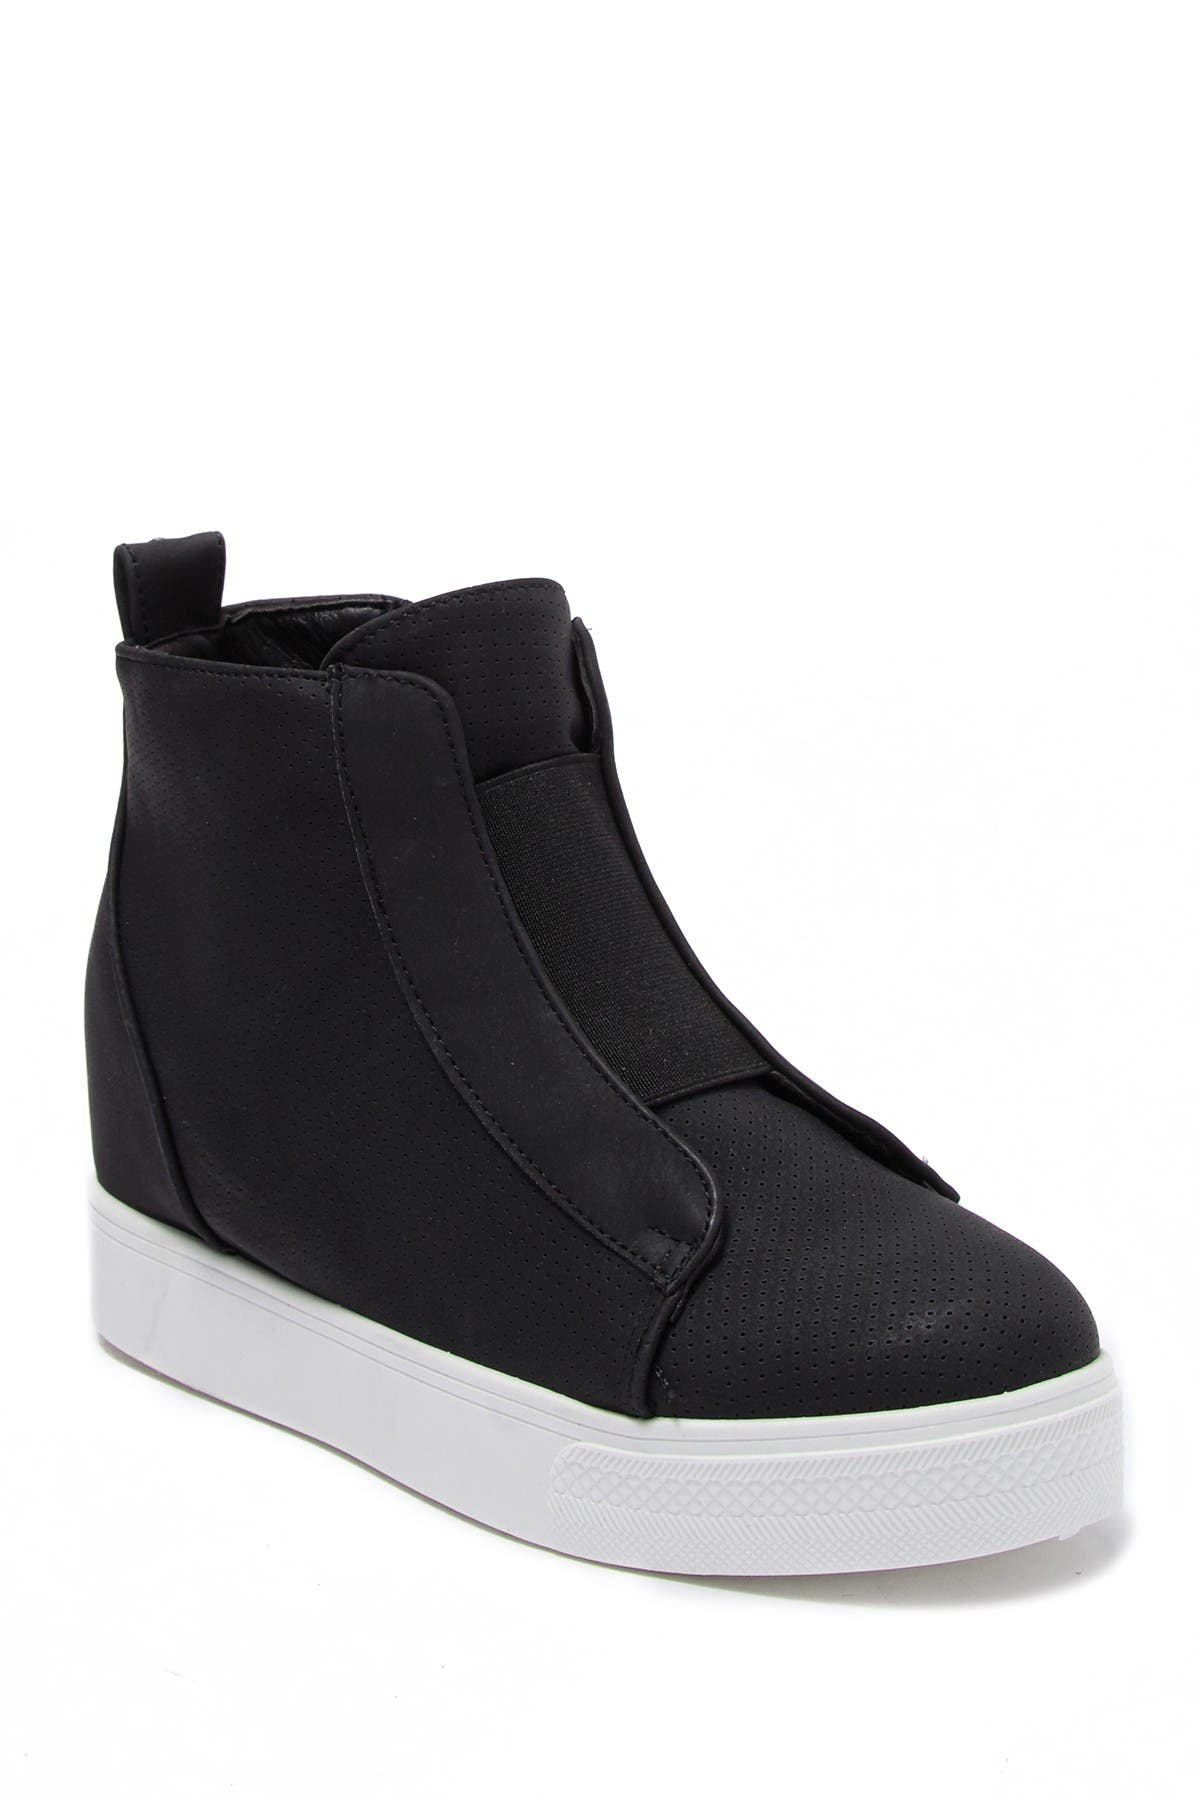 Image of DANSKIN Instinct High Top Wedge Sneaker